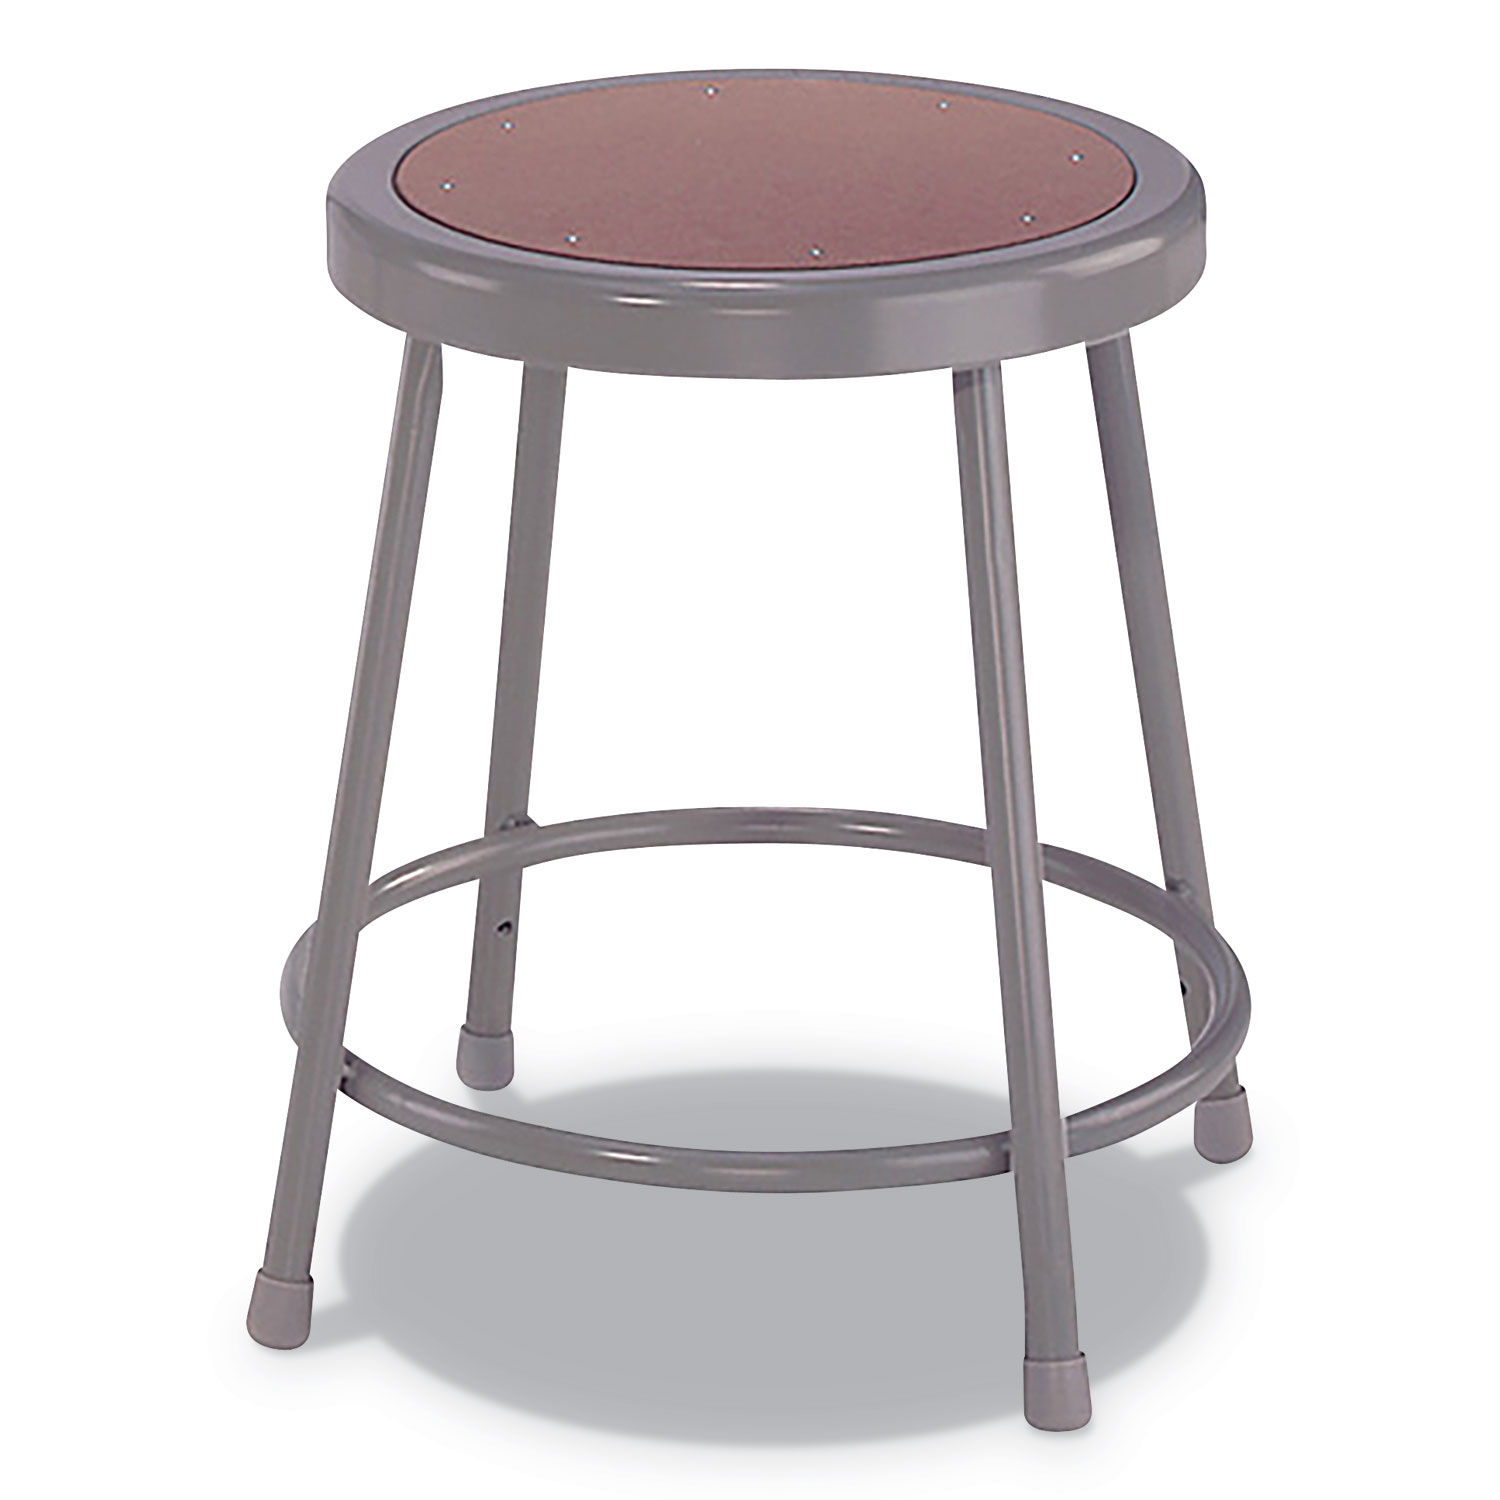 Fabulous Industrial Metal Shop Stool 18 Seat Height Supports Up To 300 Lbs Brown Seat Gray Back Gray Base Frankydiablos Diy Chair Ideas Frankydiabloscom